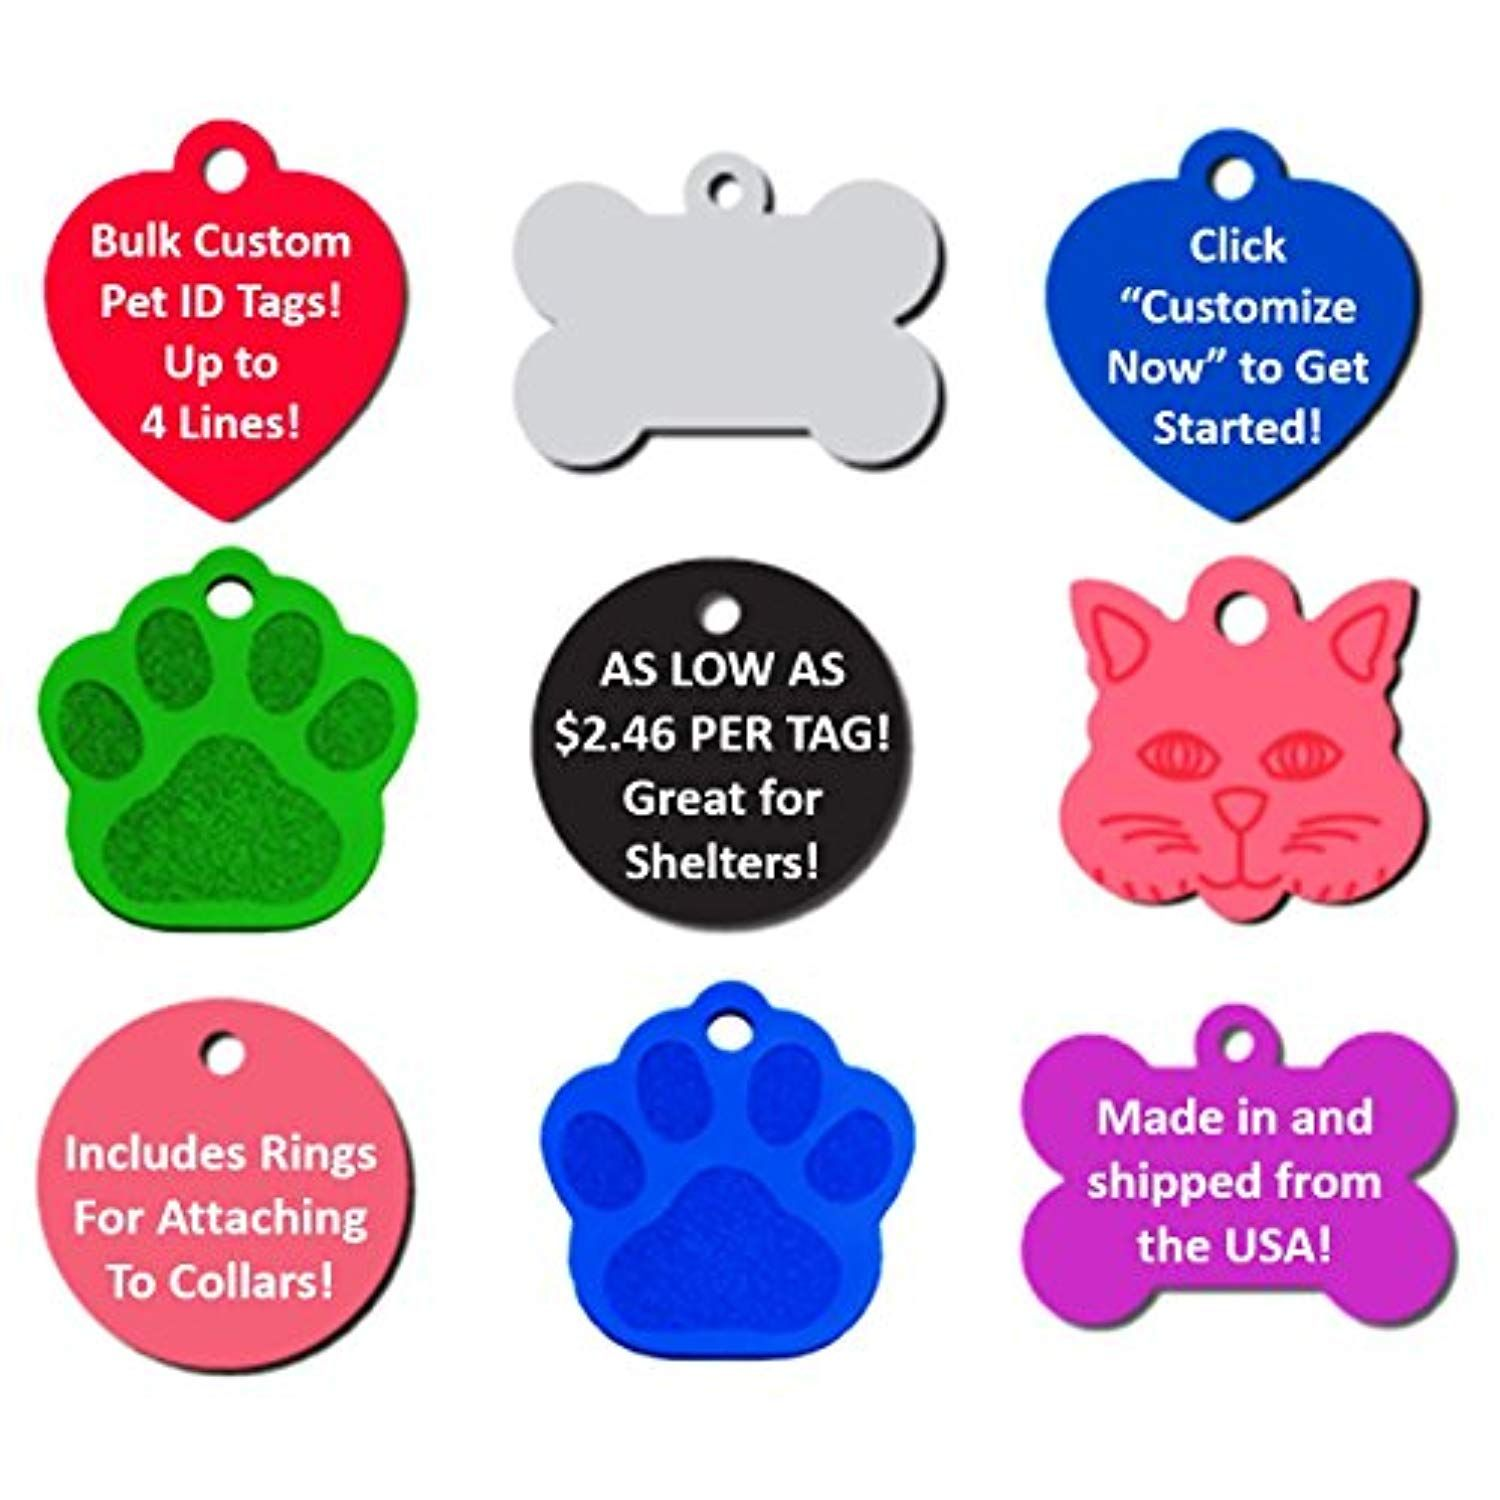 430f2baee8e3 Bulk Personalized Pet ID Tags for Rescues, Shelters, Humane Societies | As  Low As